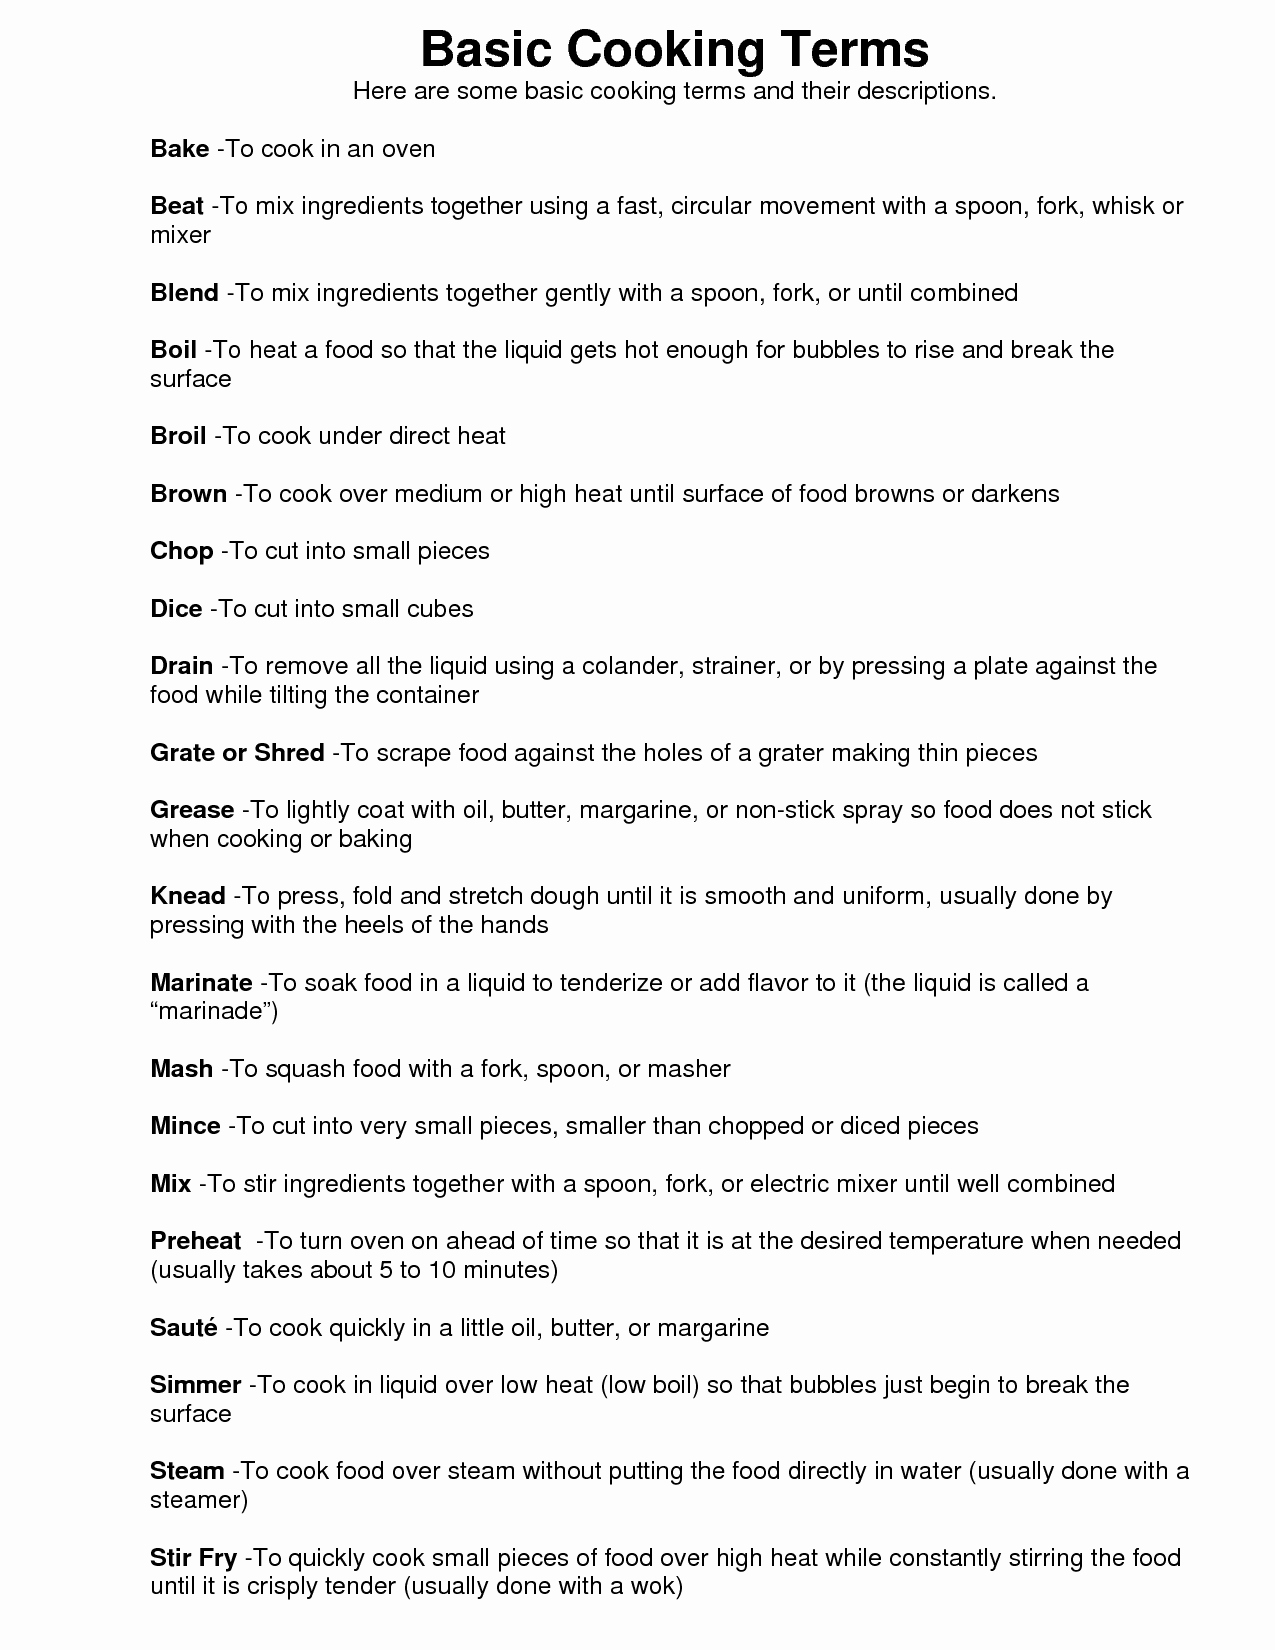 Basic Cooking Terms Worksheet Lovely Basic Safety Worksheet